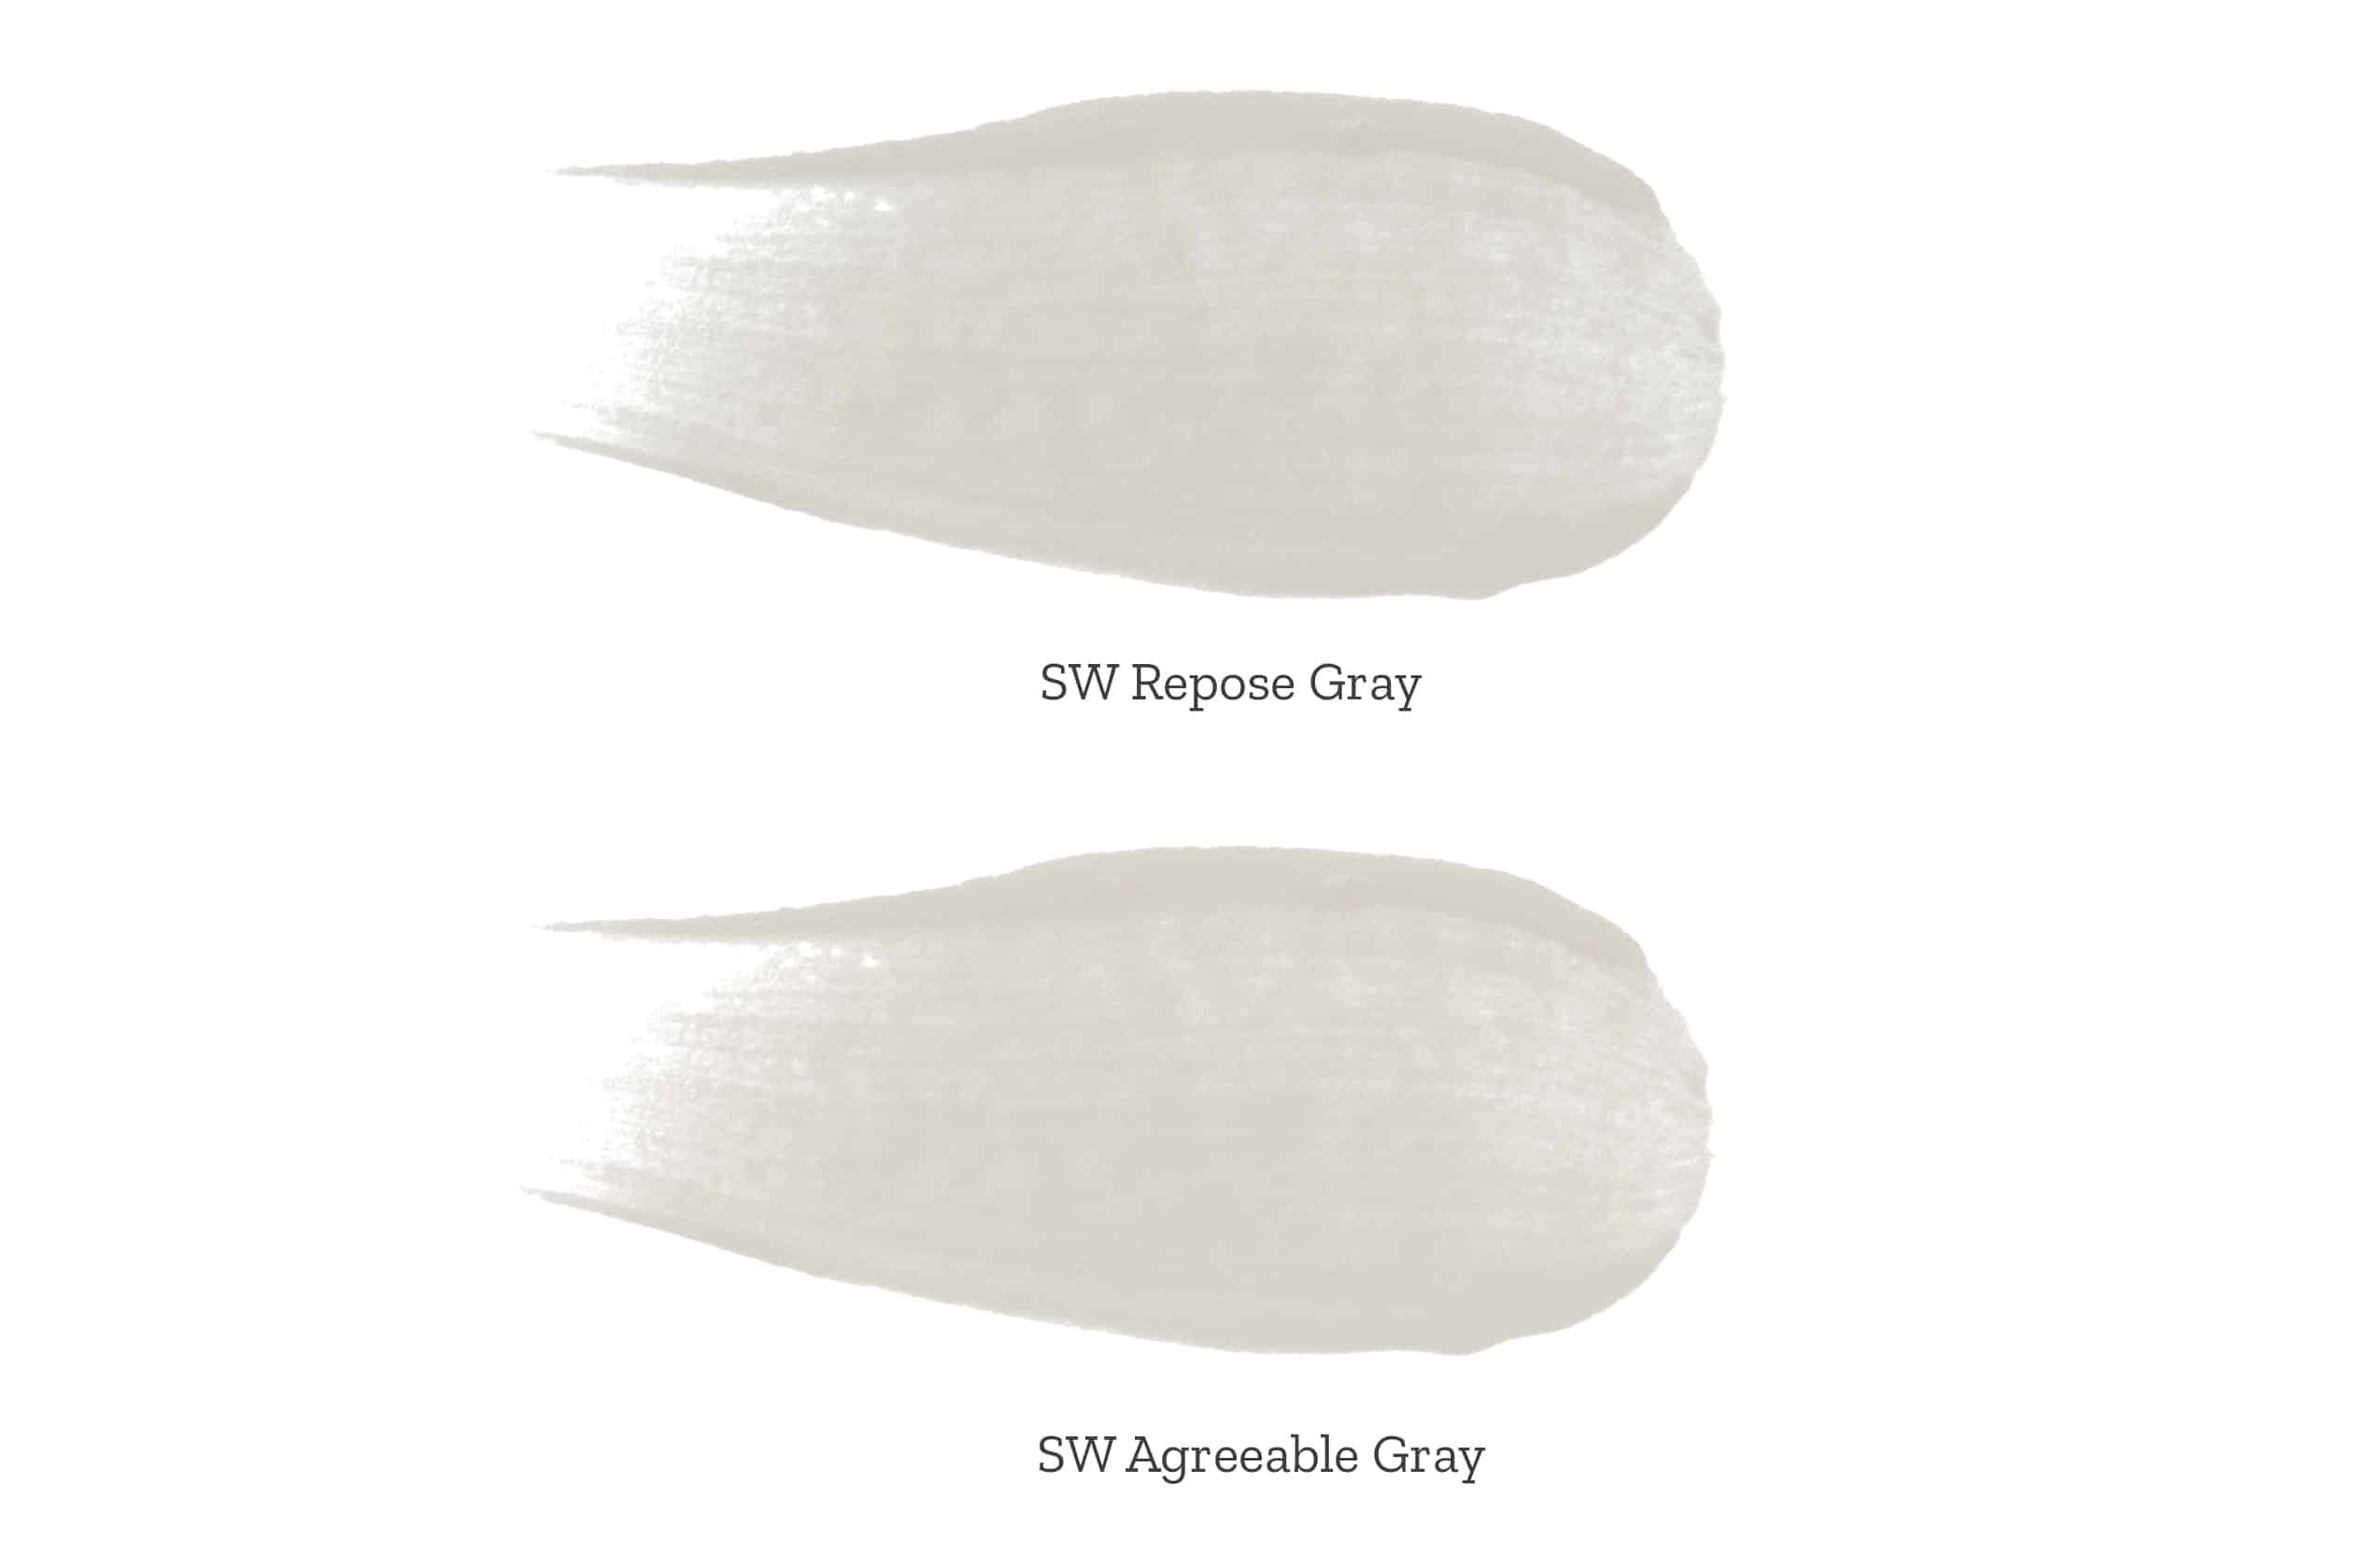 repose gray vs agreeable gray, side by sideå